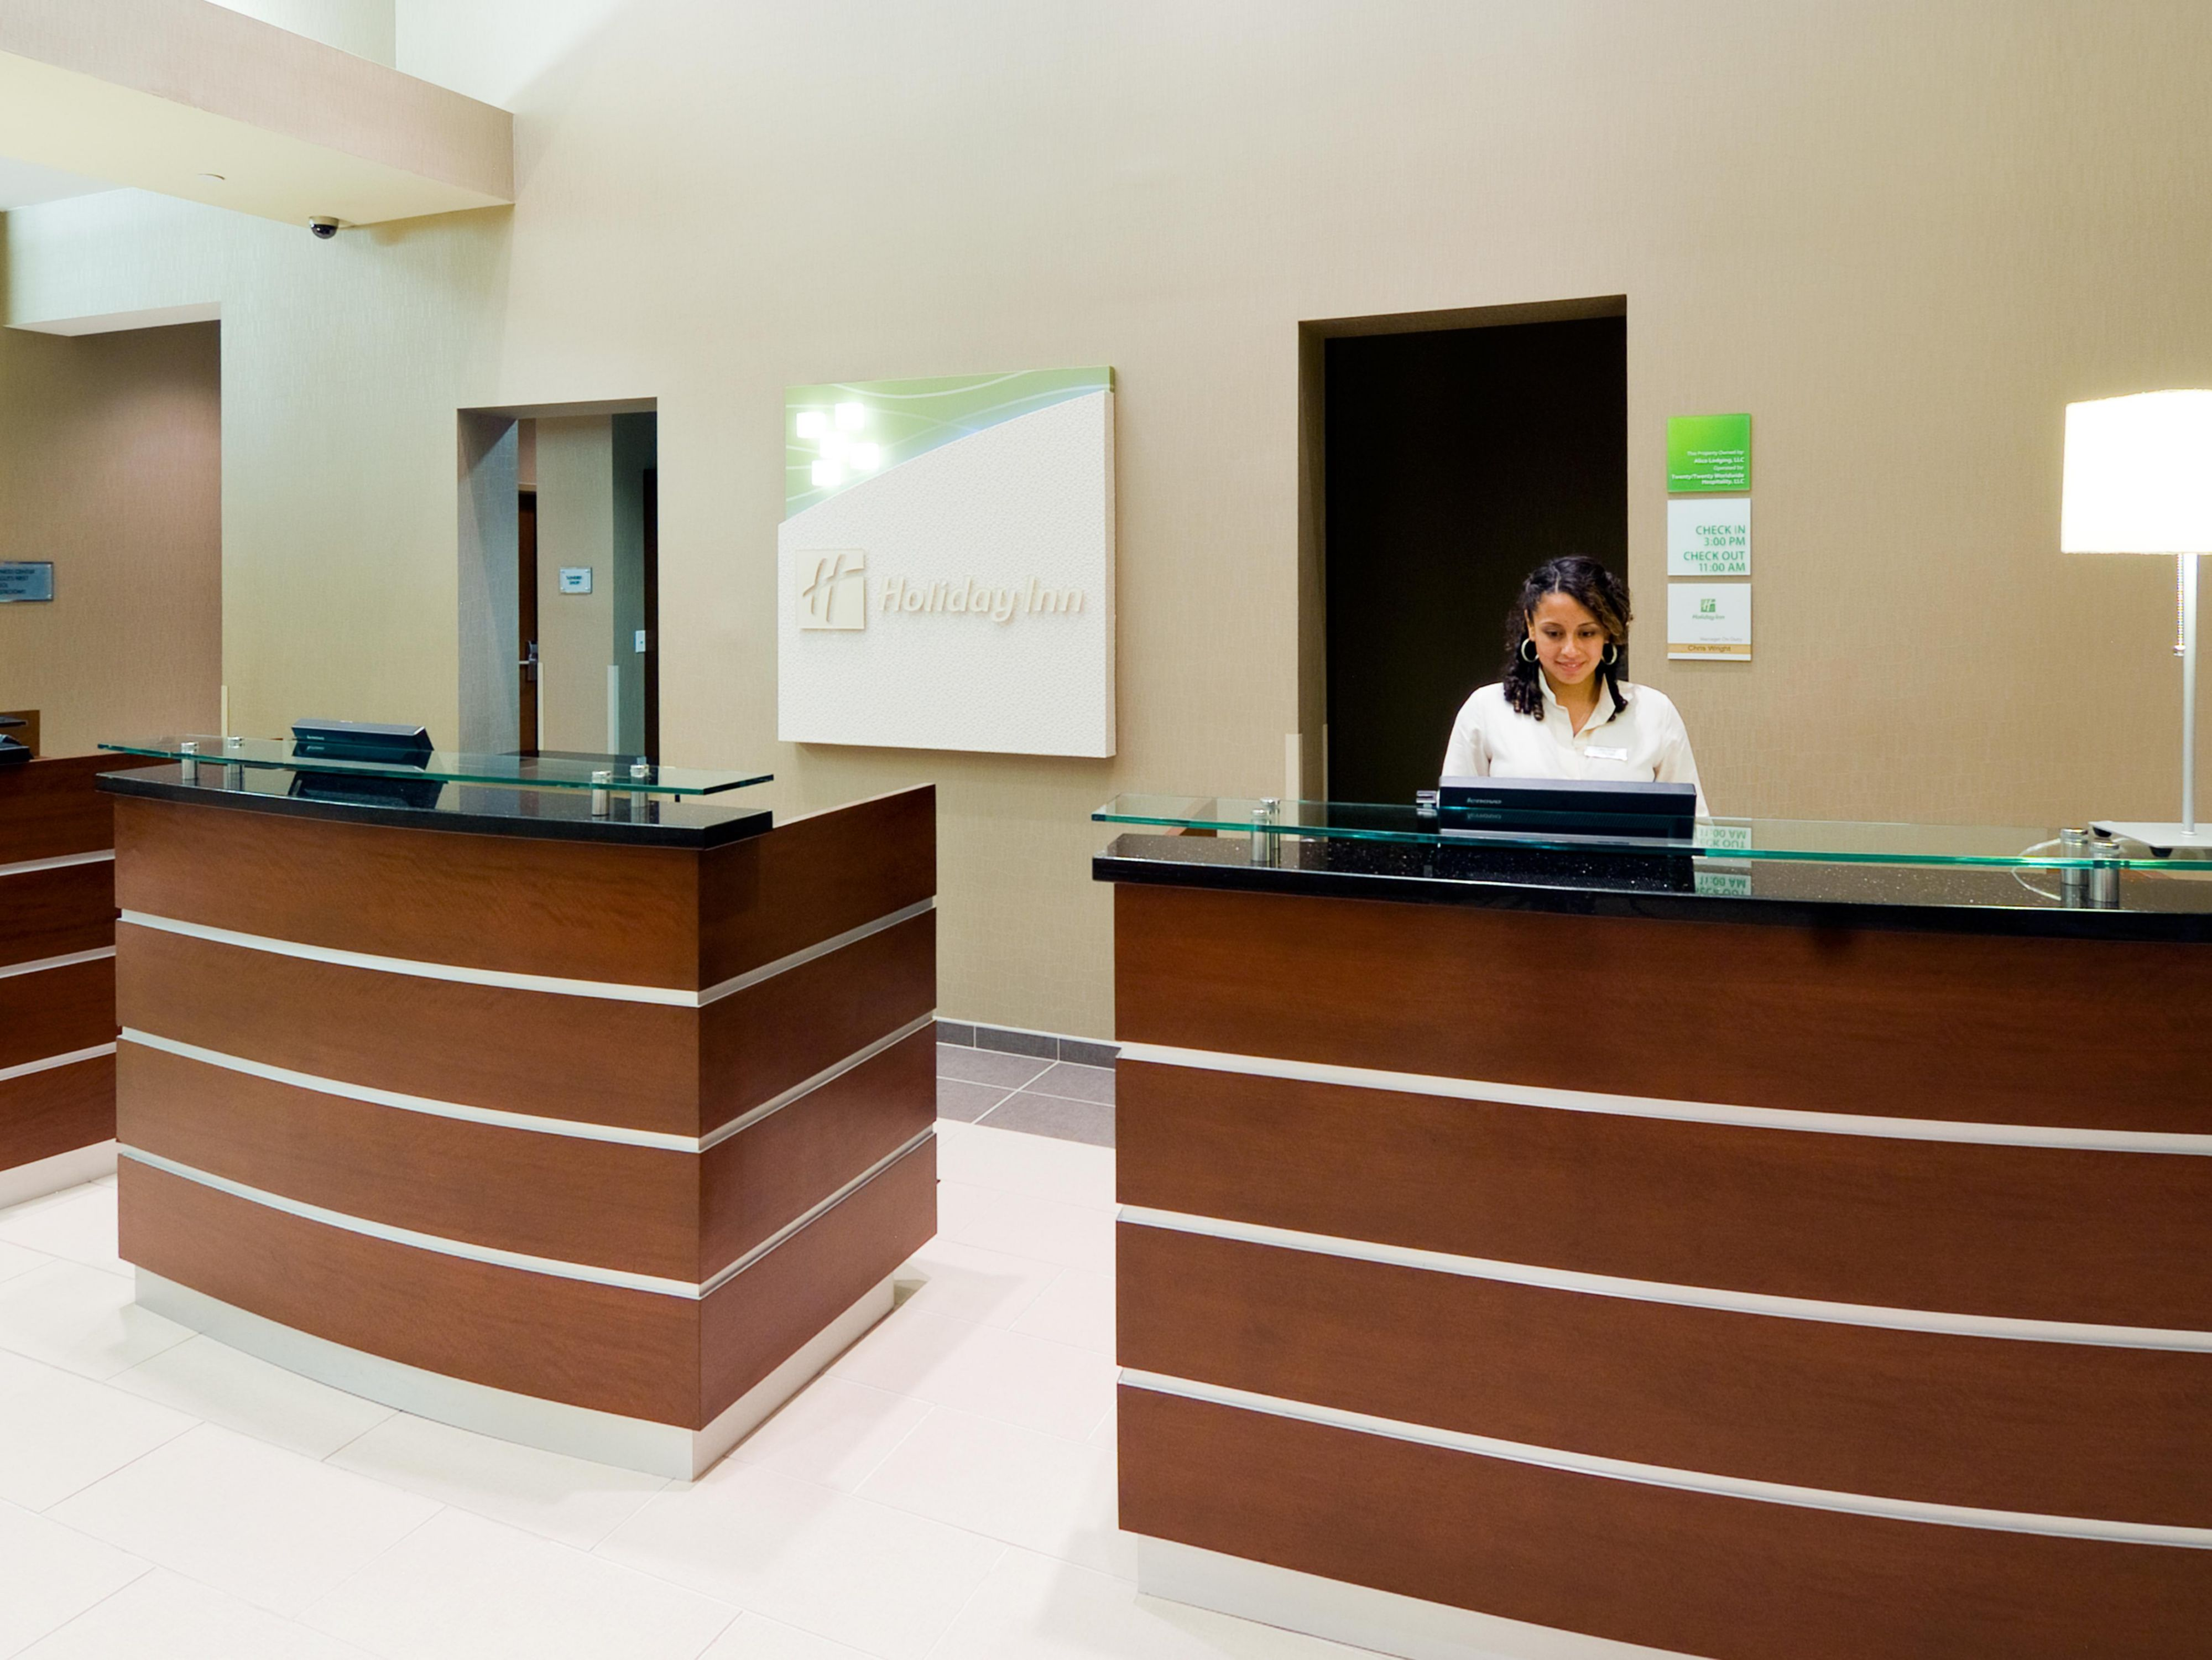 Hotel Lobby Front Desk